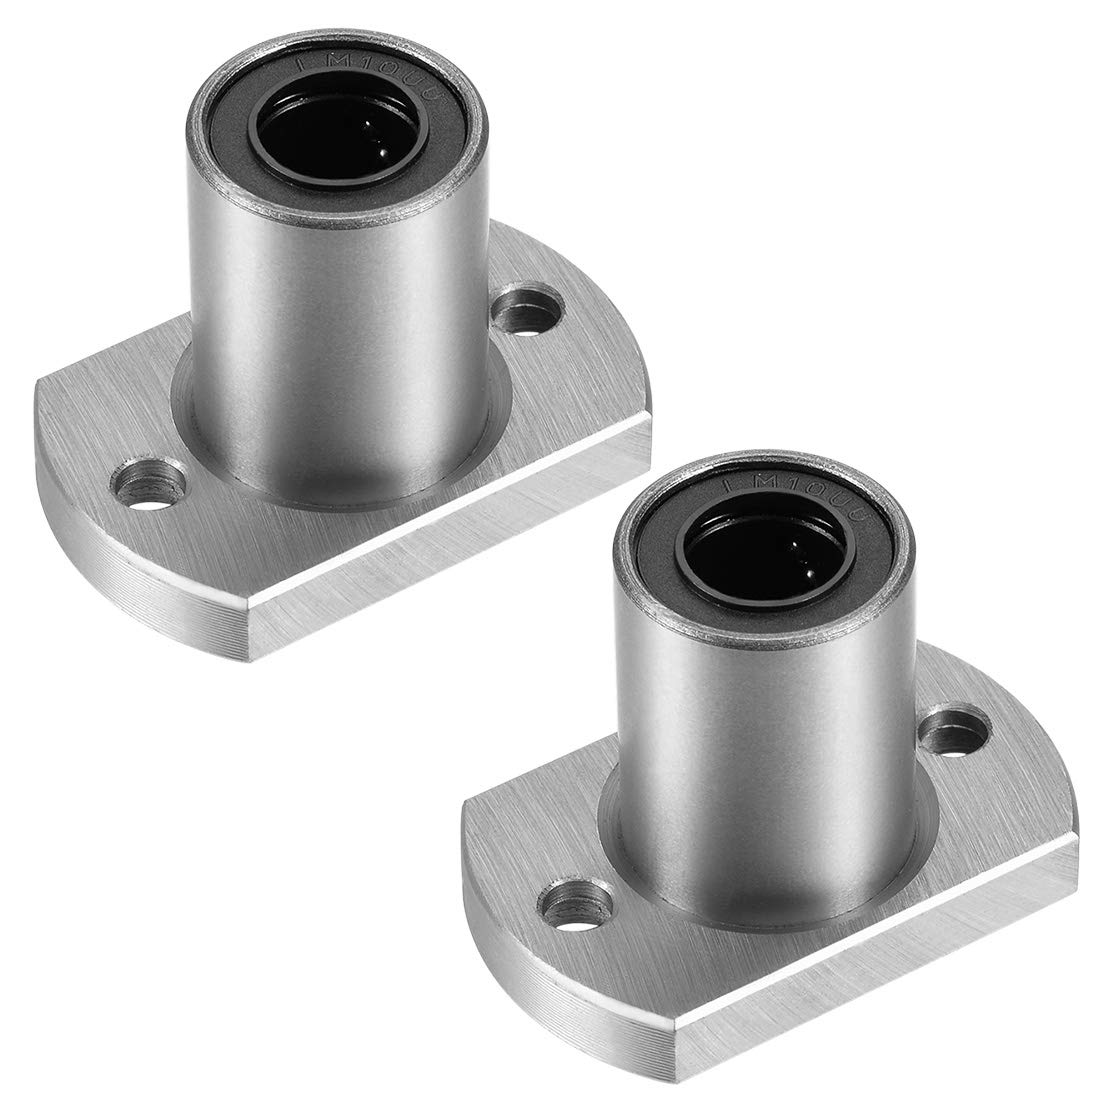 sourcing map LMH6UU Two Side Cut Flange Linear Ball Bearings, 6mm Bore Dia, 12mm OD, 19mm Length (Pack of 2)